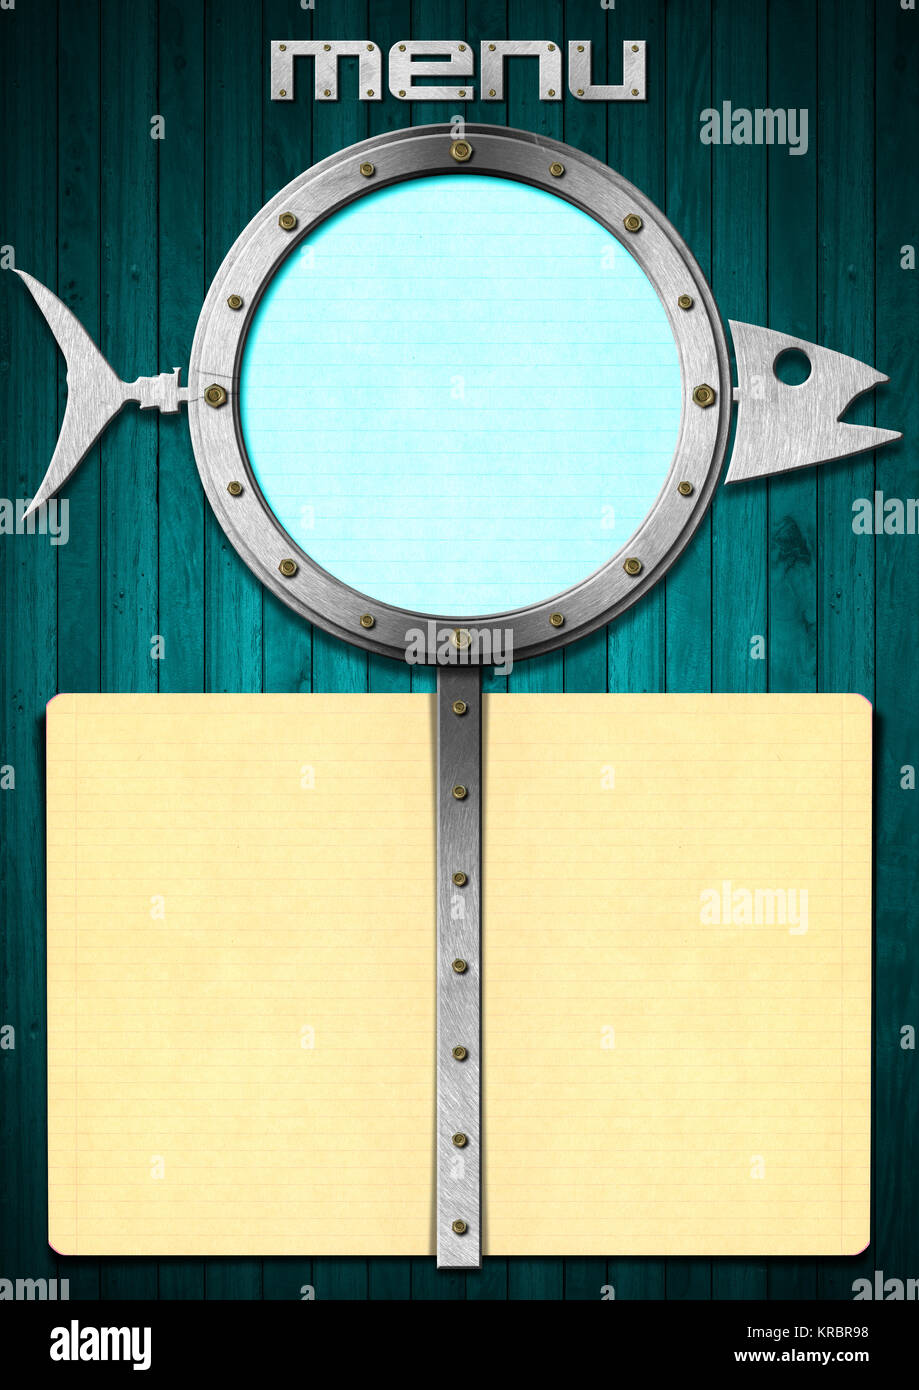 restaurant fish menu with metal porthole and yellow empty pages